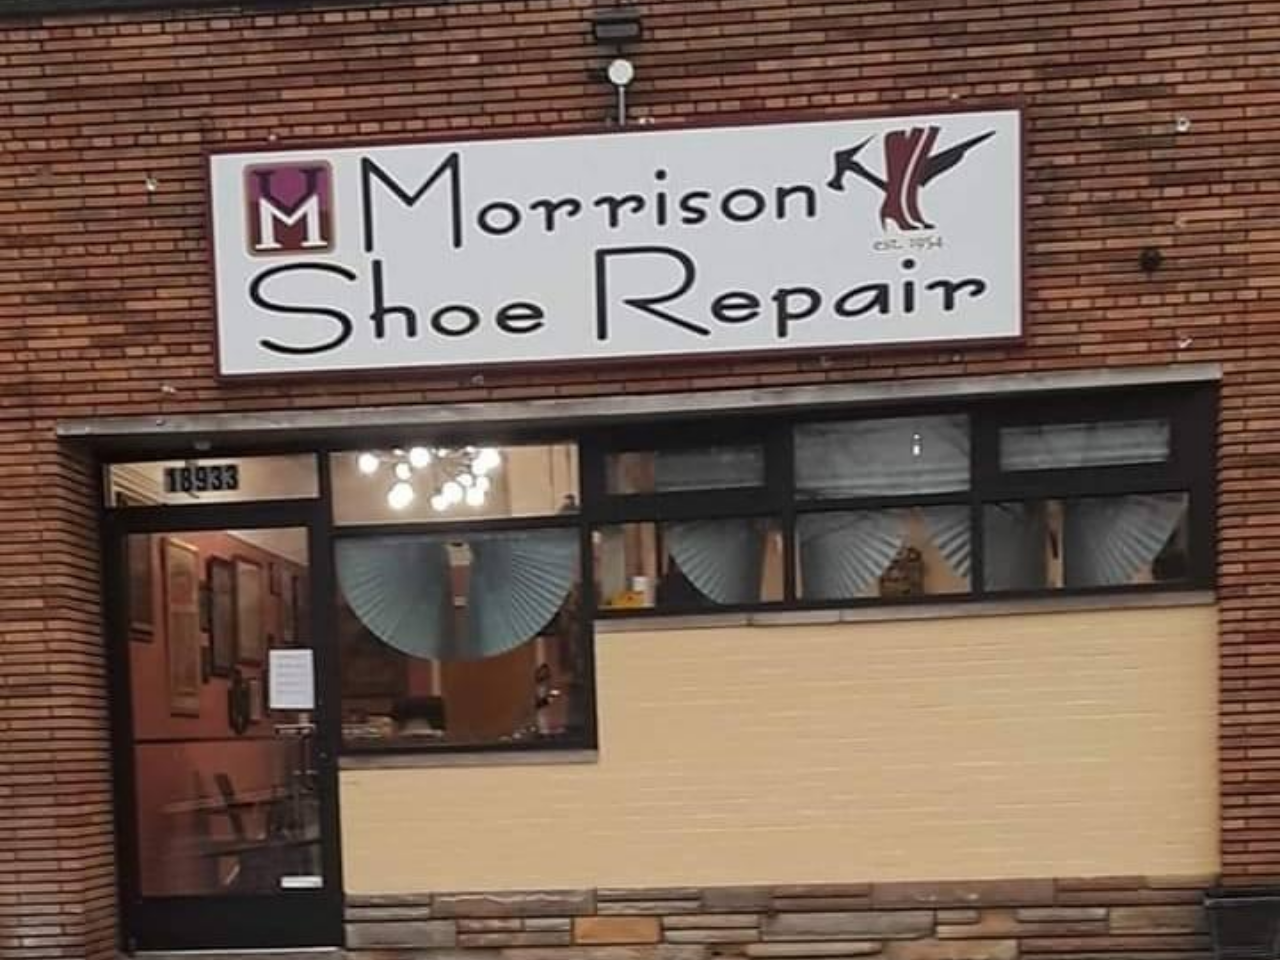 House of Morrison Shoe Repair